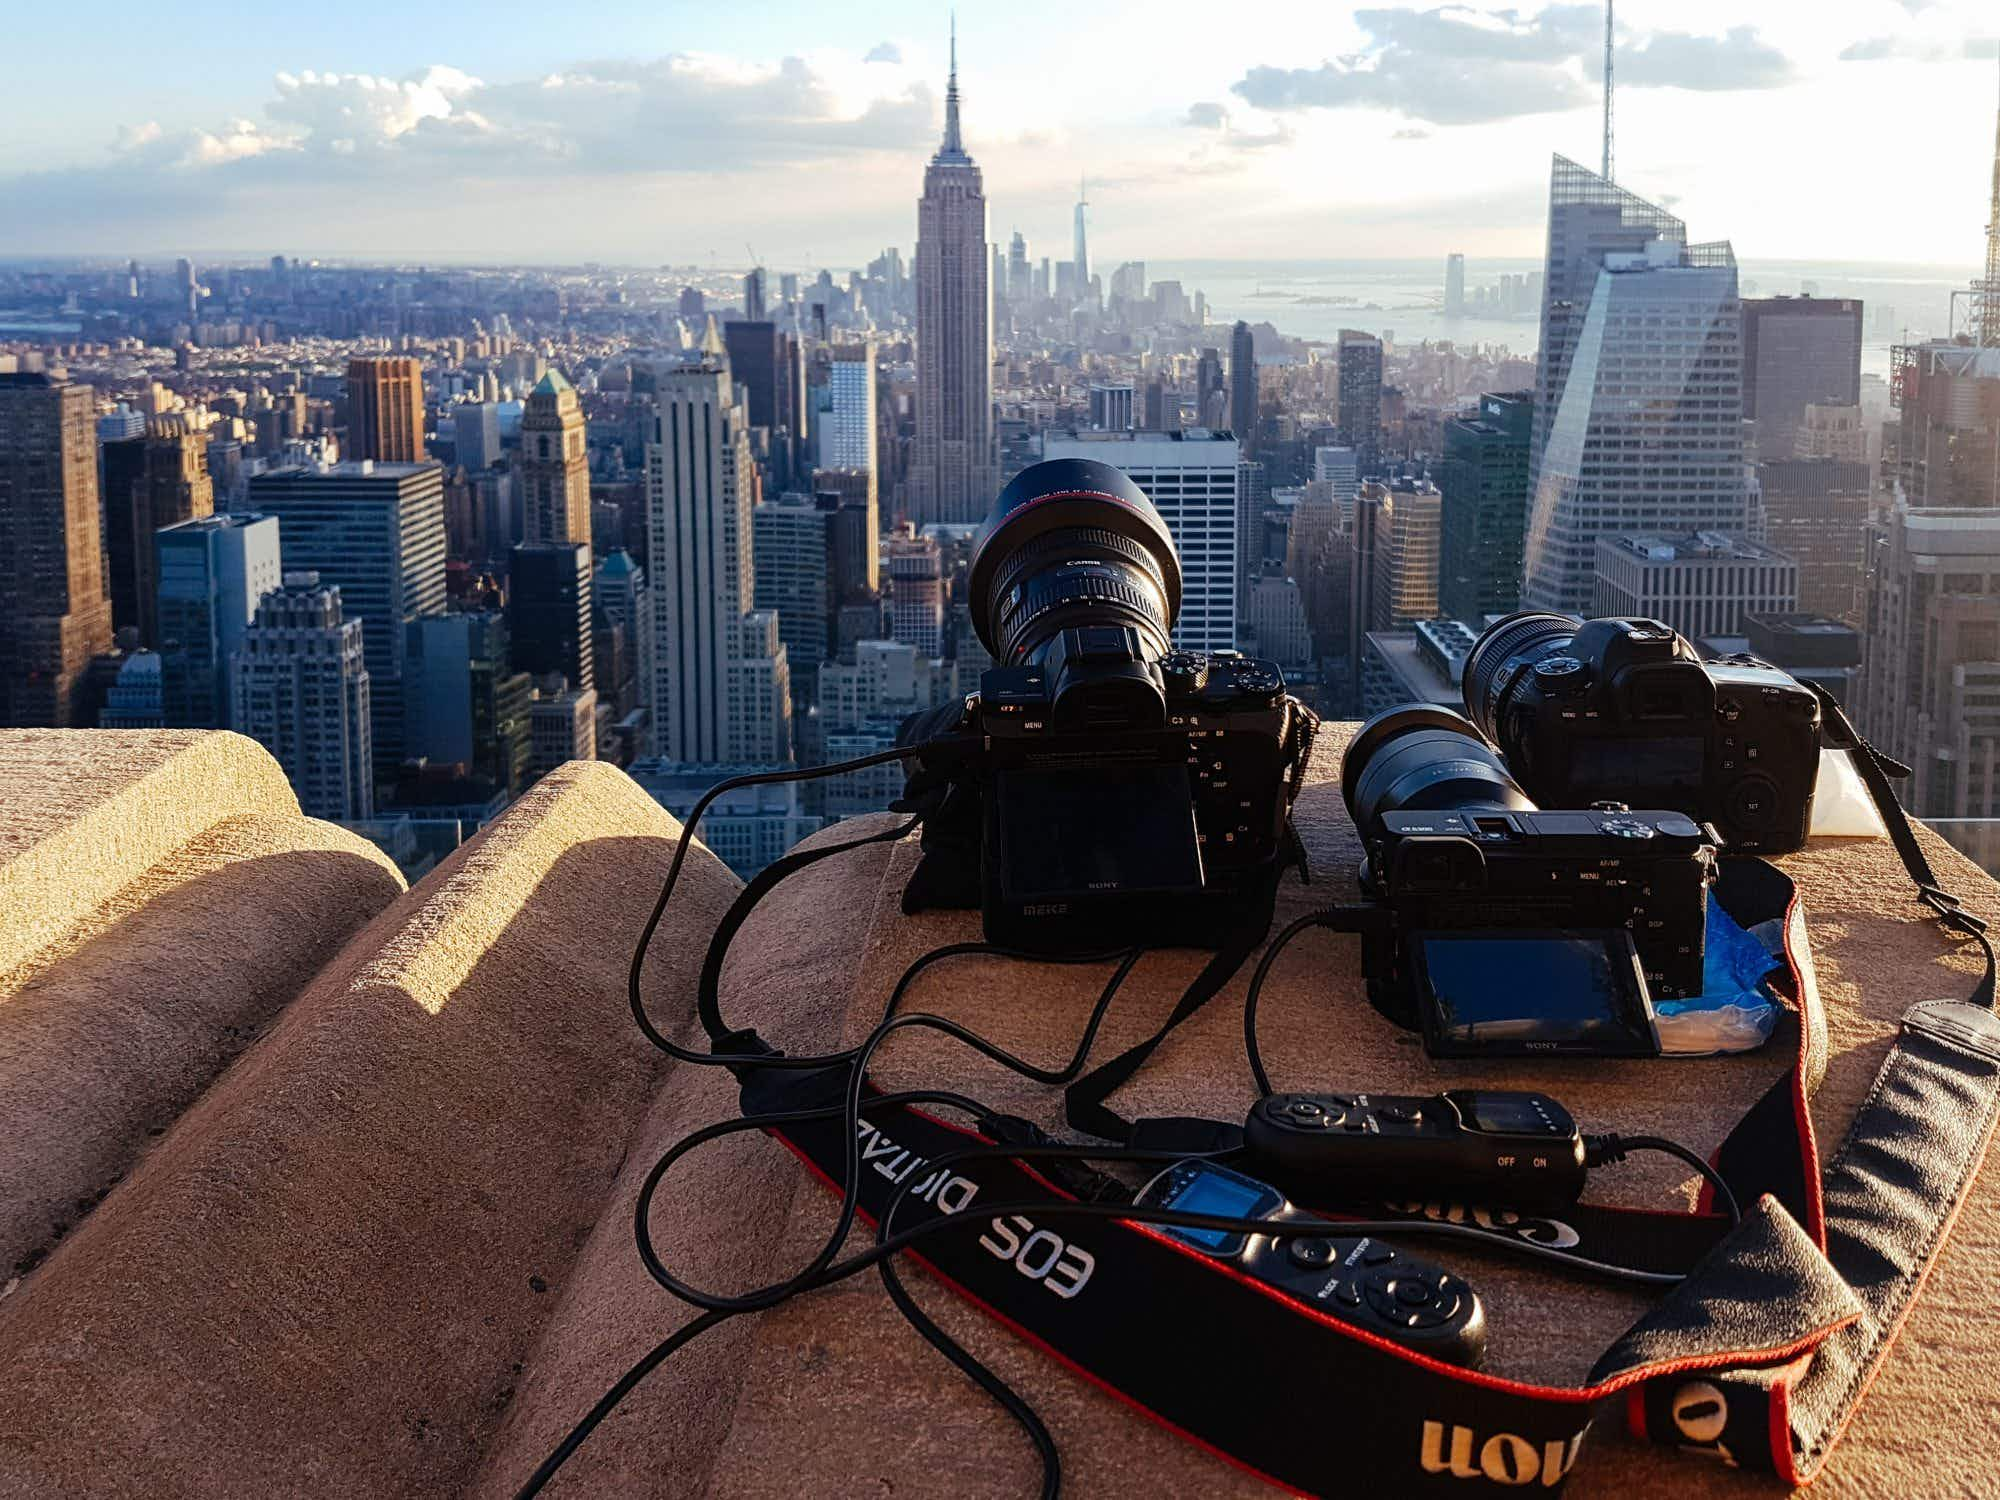 This incredible New York hyperlapse perfectly captures the city that never sleeps